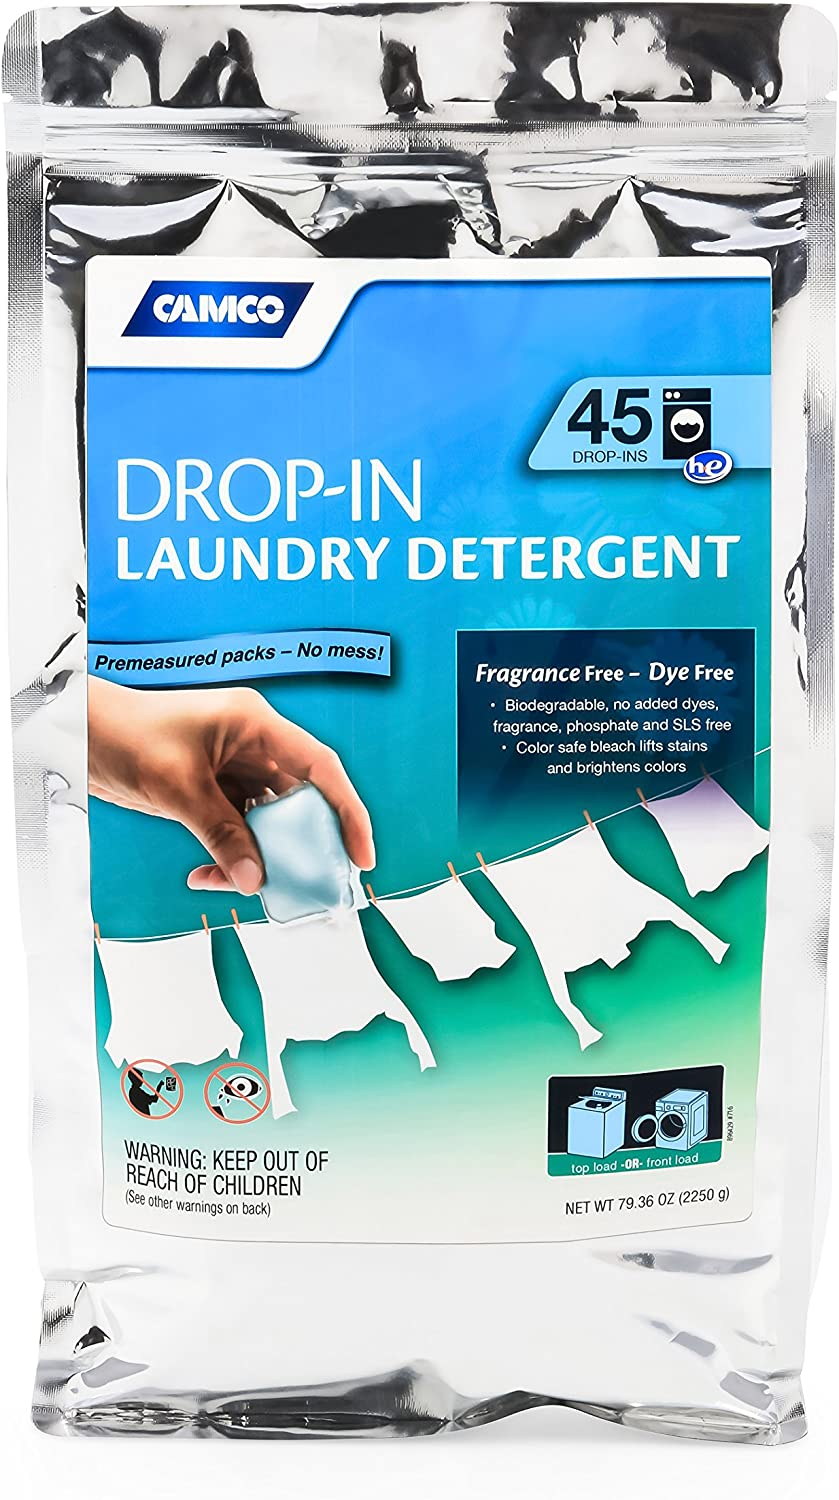 Camco 41591 Laundry Bargain Detergent 45 of Pack Lowest price challenge Drop-In